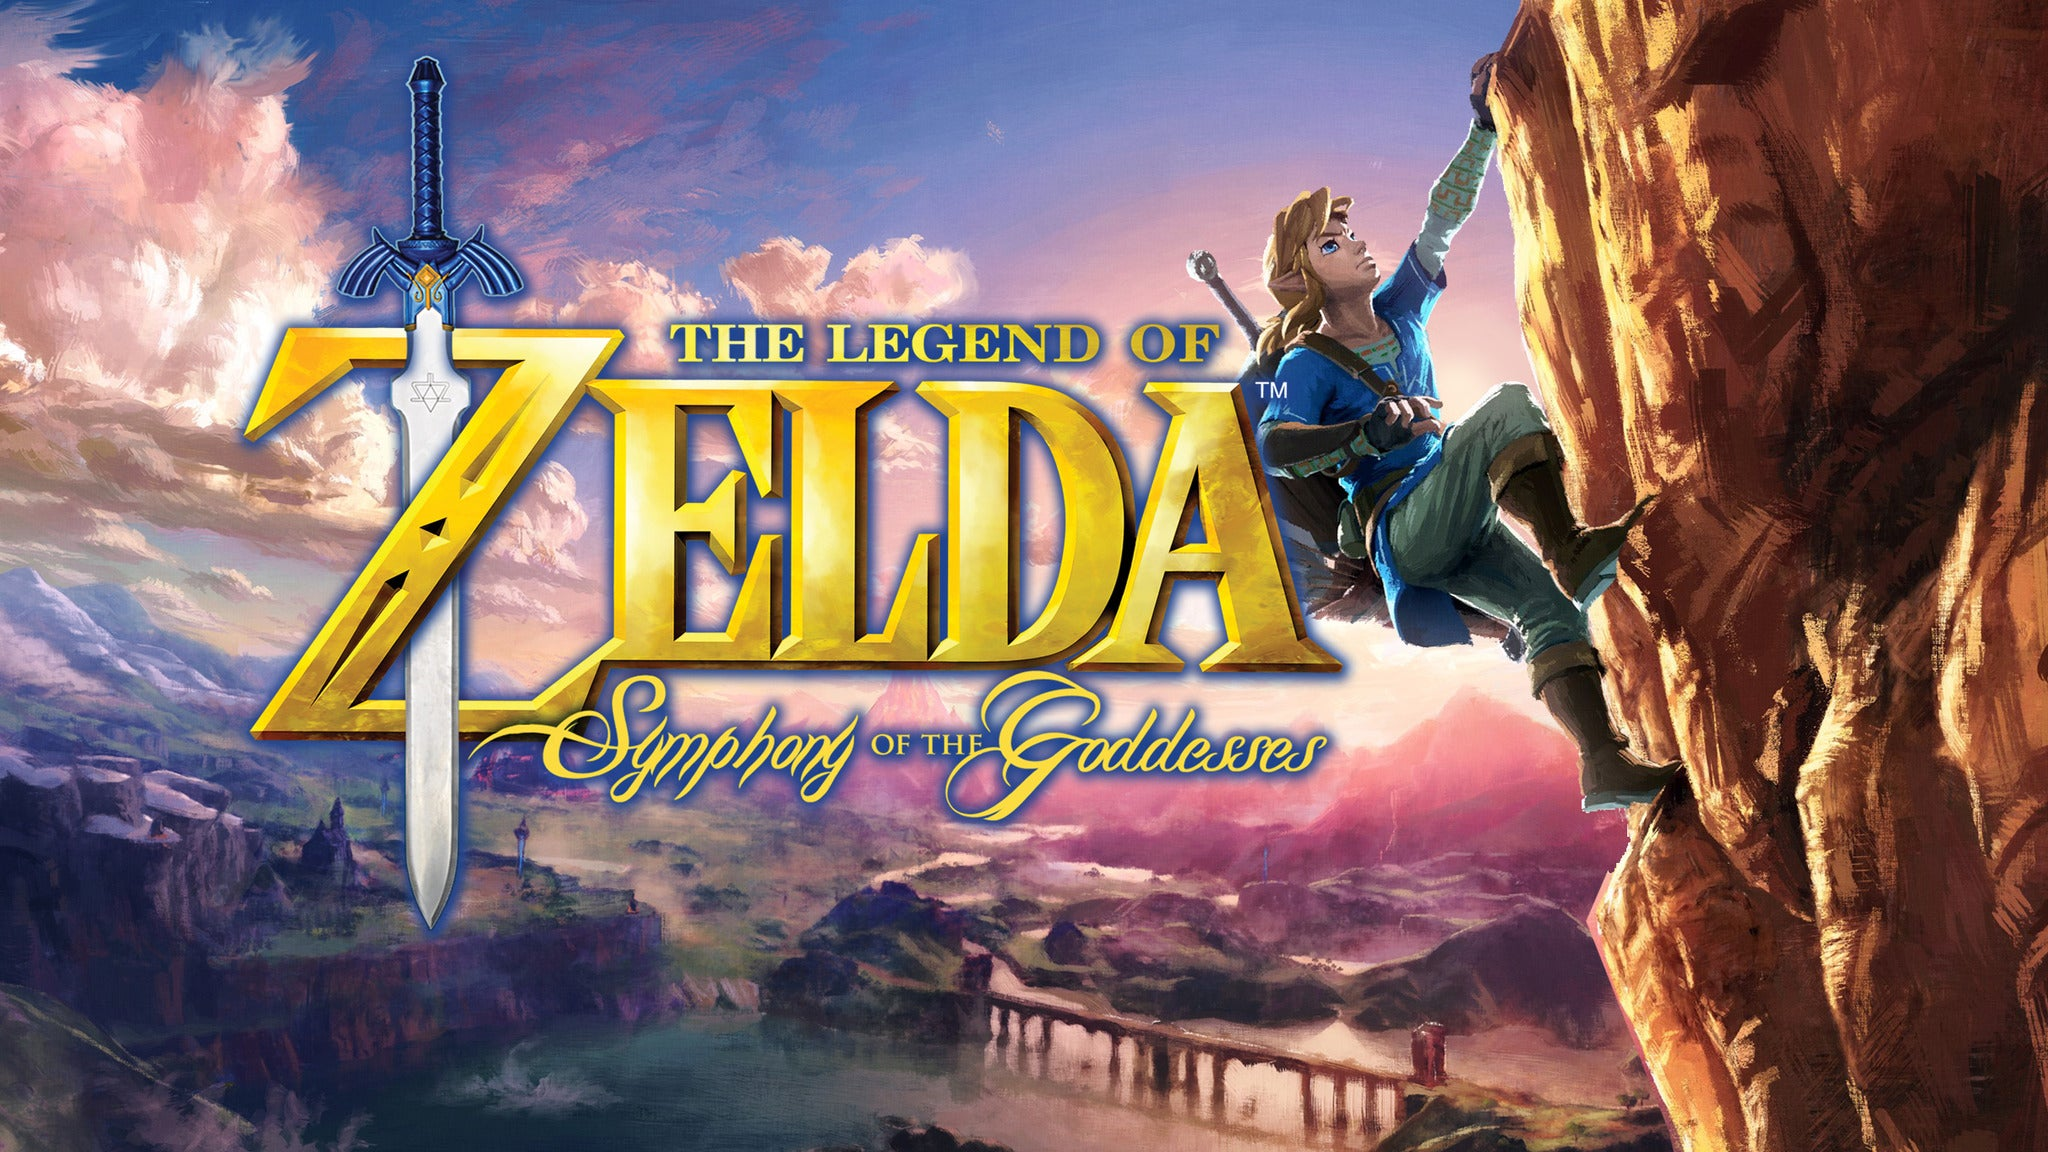 The Legend of Zelda: Symphony of the Goddesses.